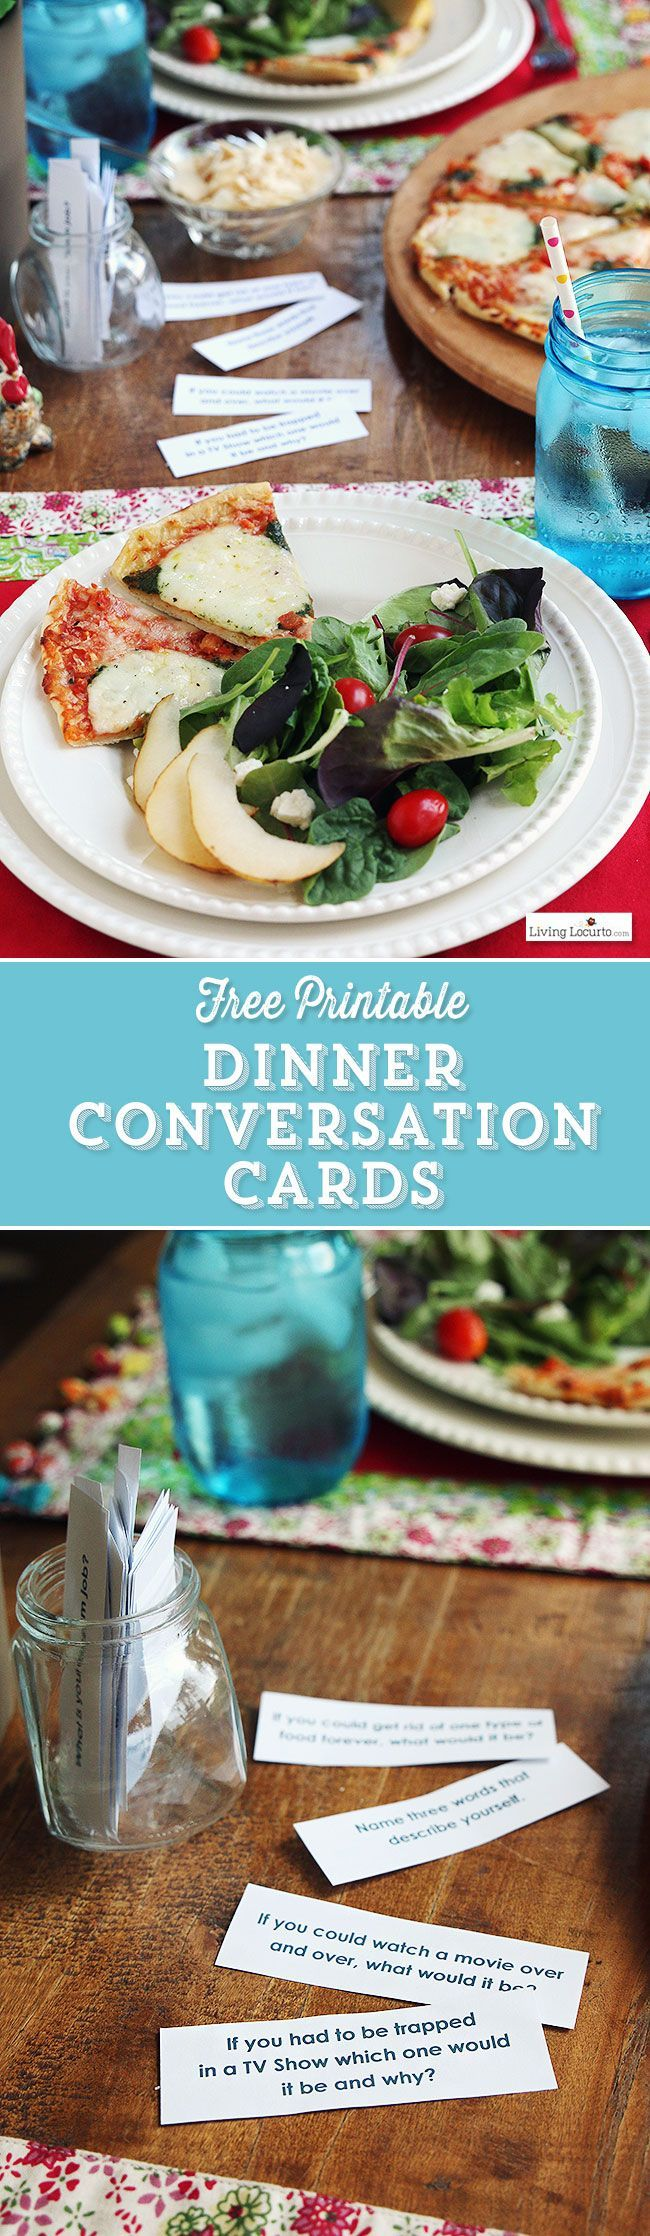 48 Free Printable Dinner Conversation Starter Cards. Perfect meal idea for  your family or dinner